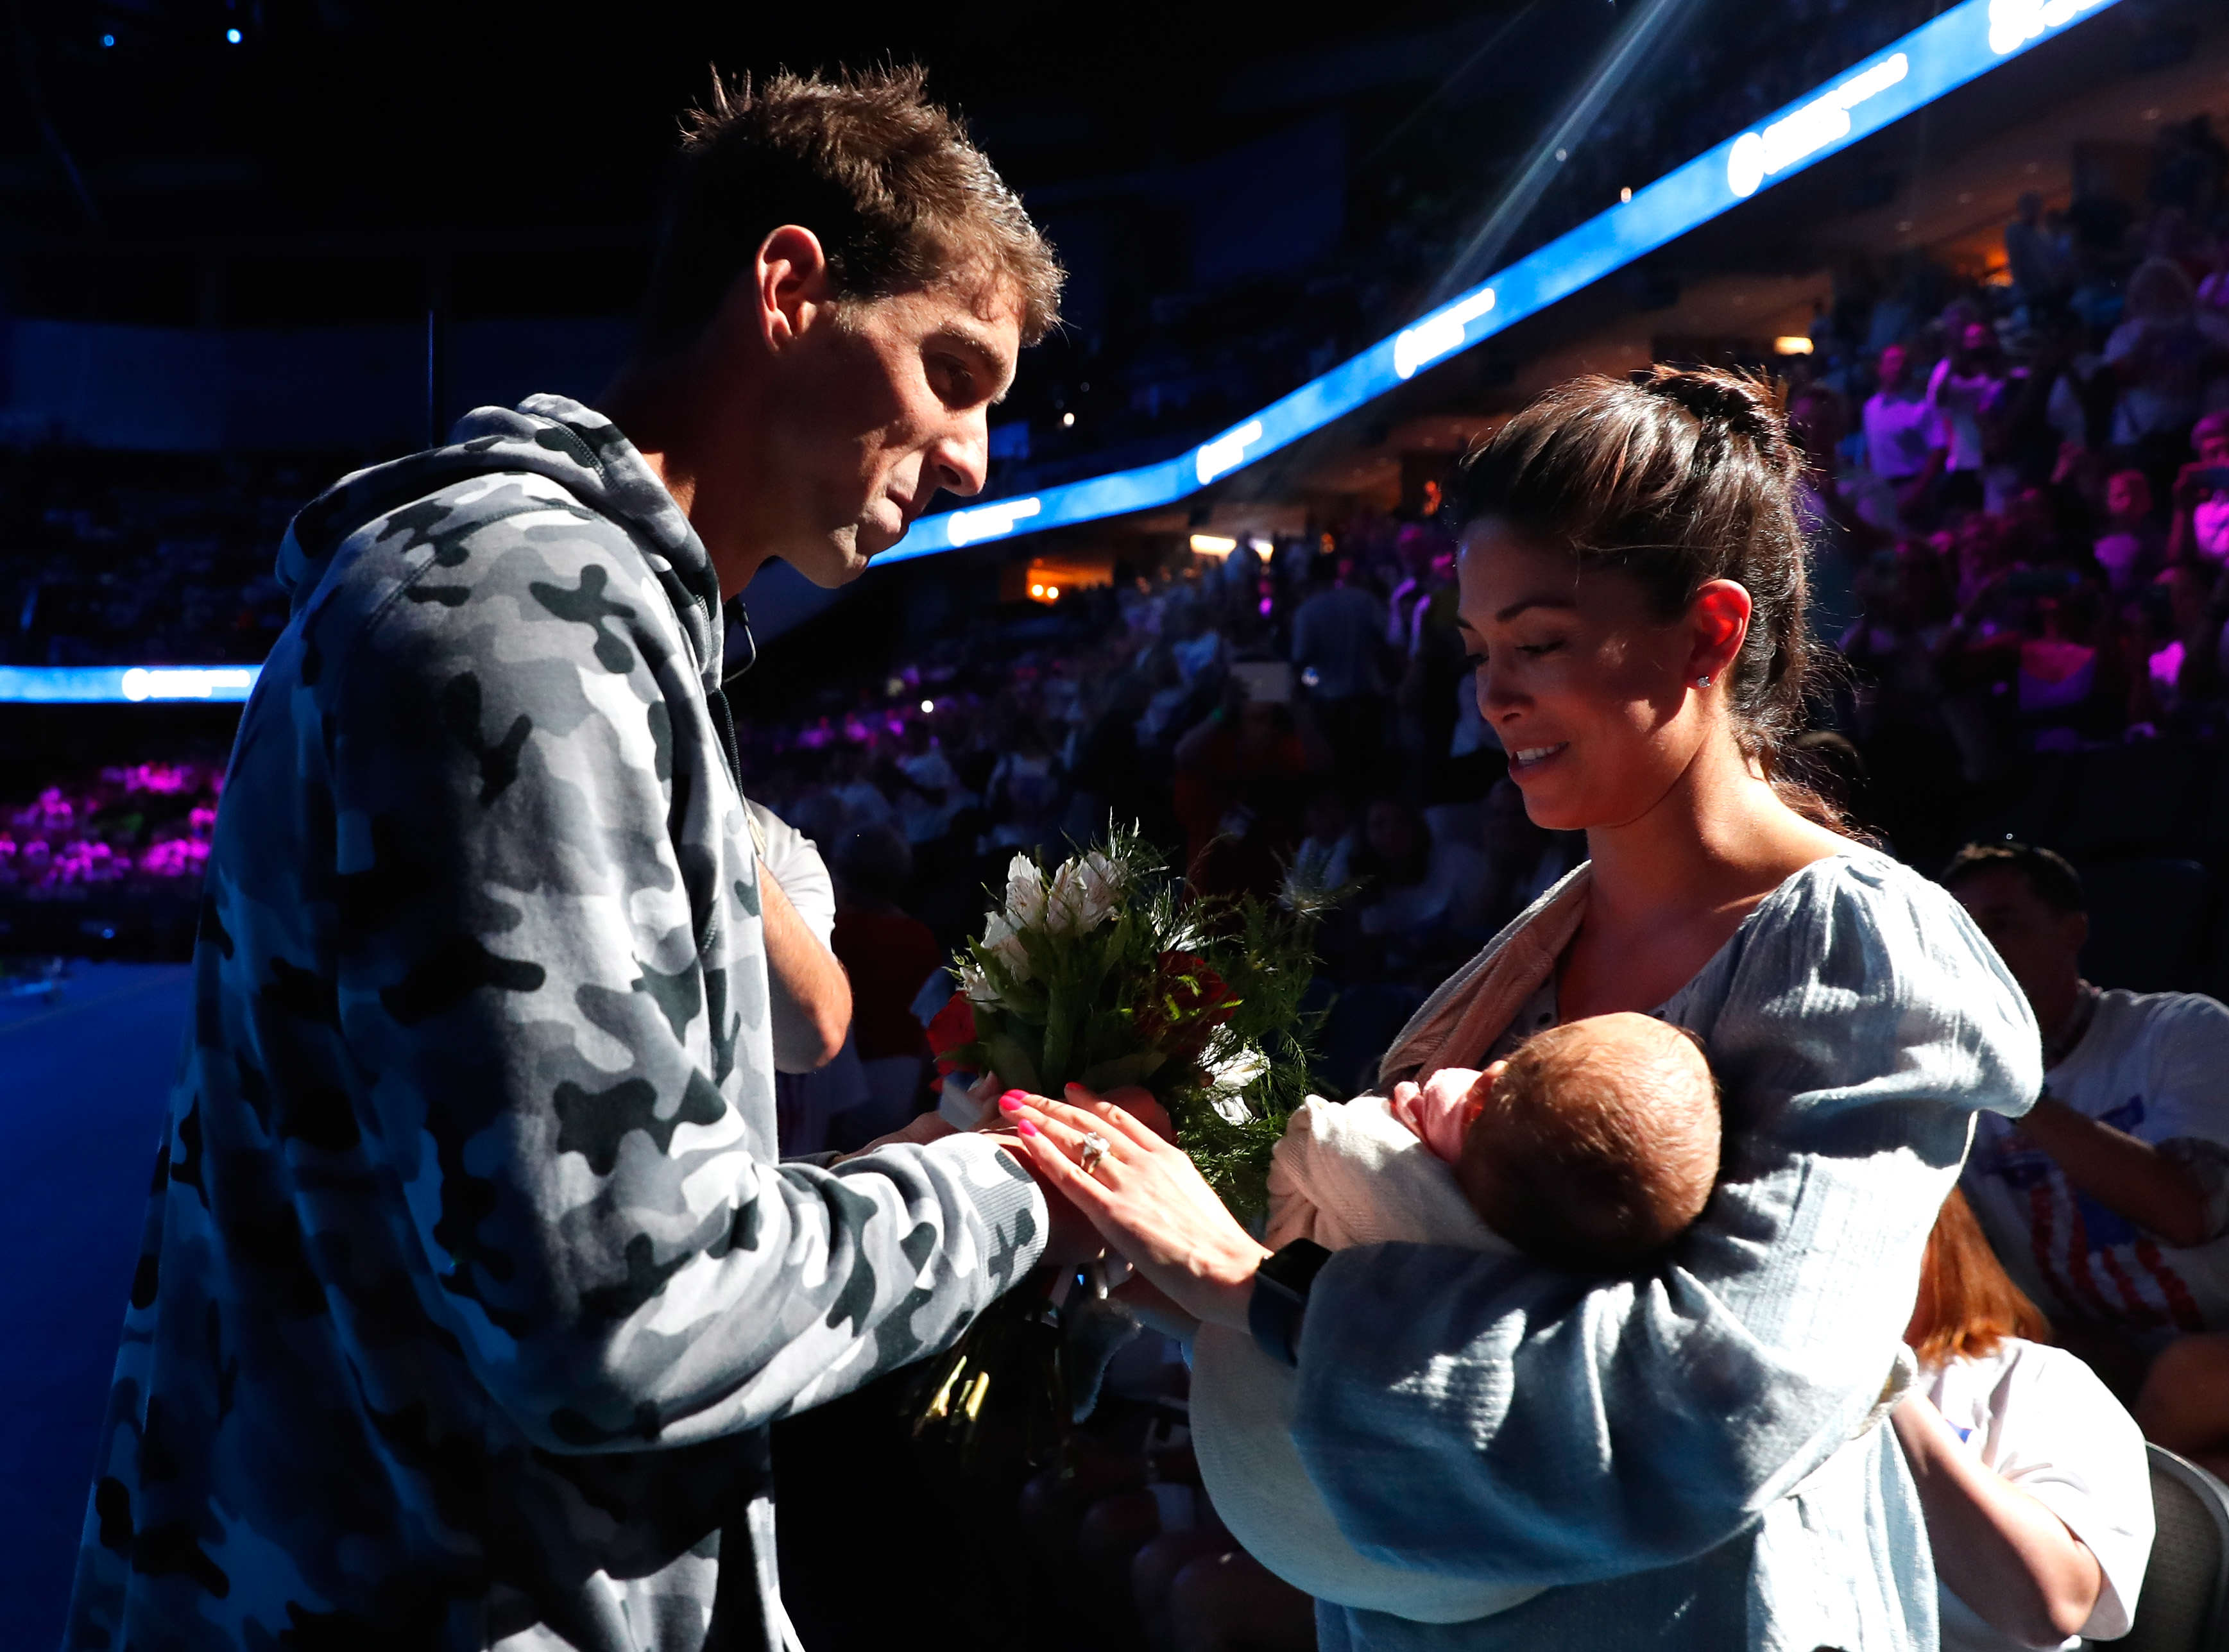 Michael Phelps Alleged Intersex Ex Goes On Facebook Rant GettyImages 544218330